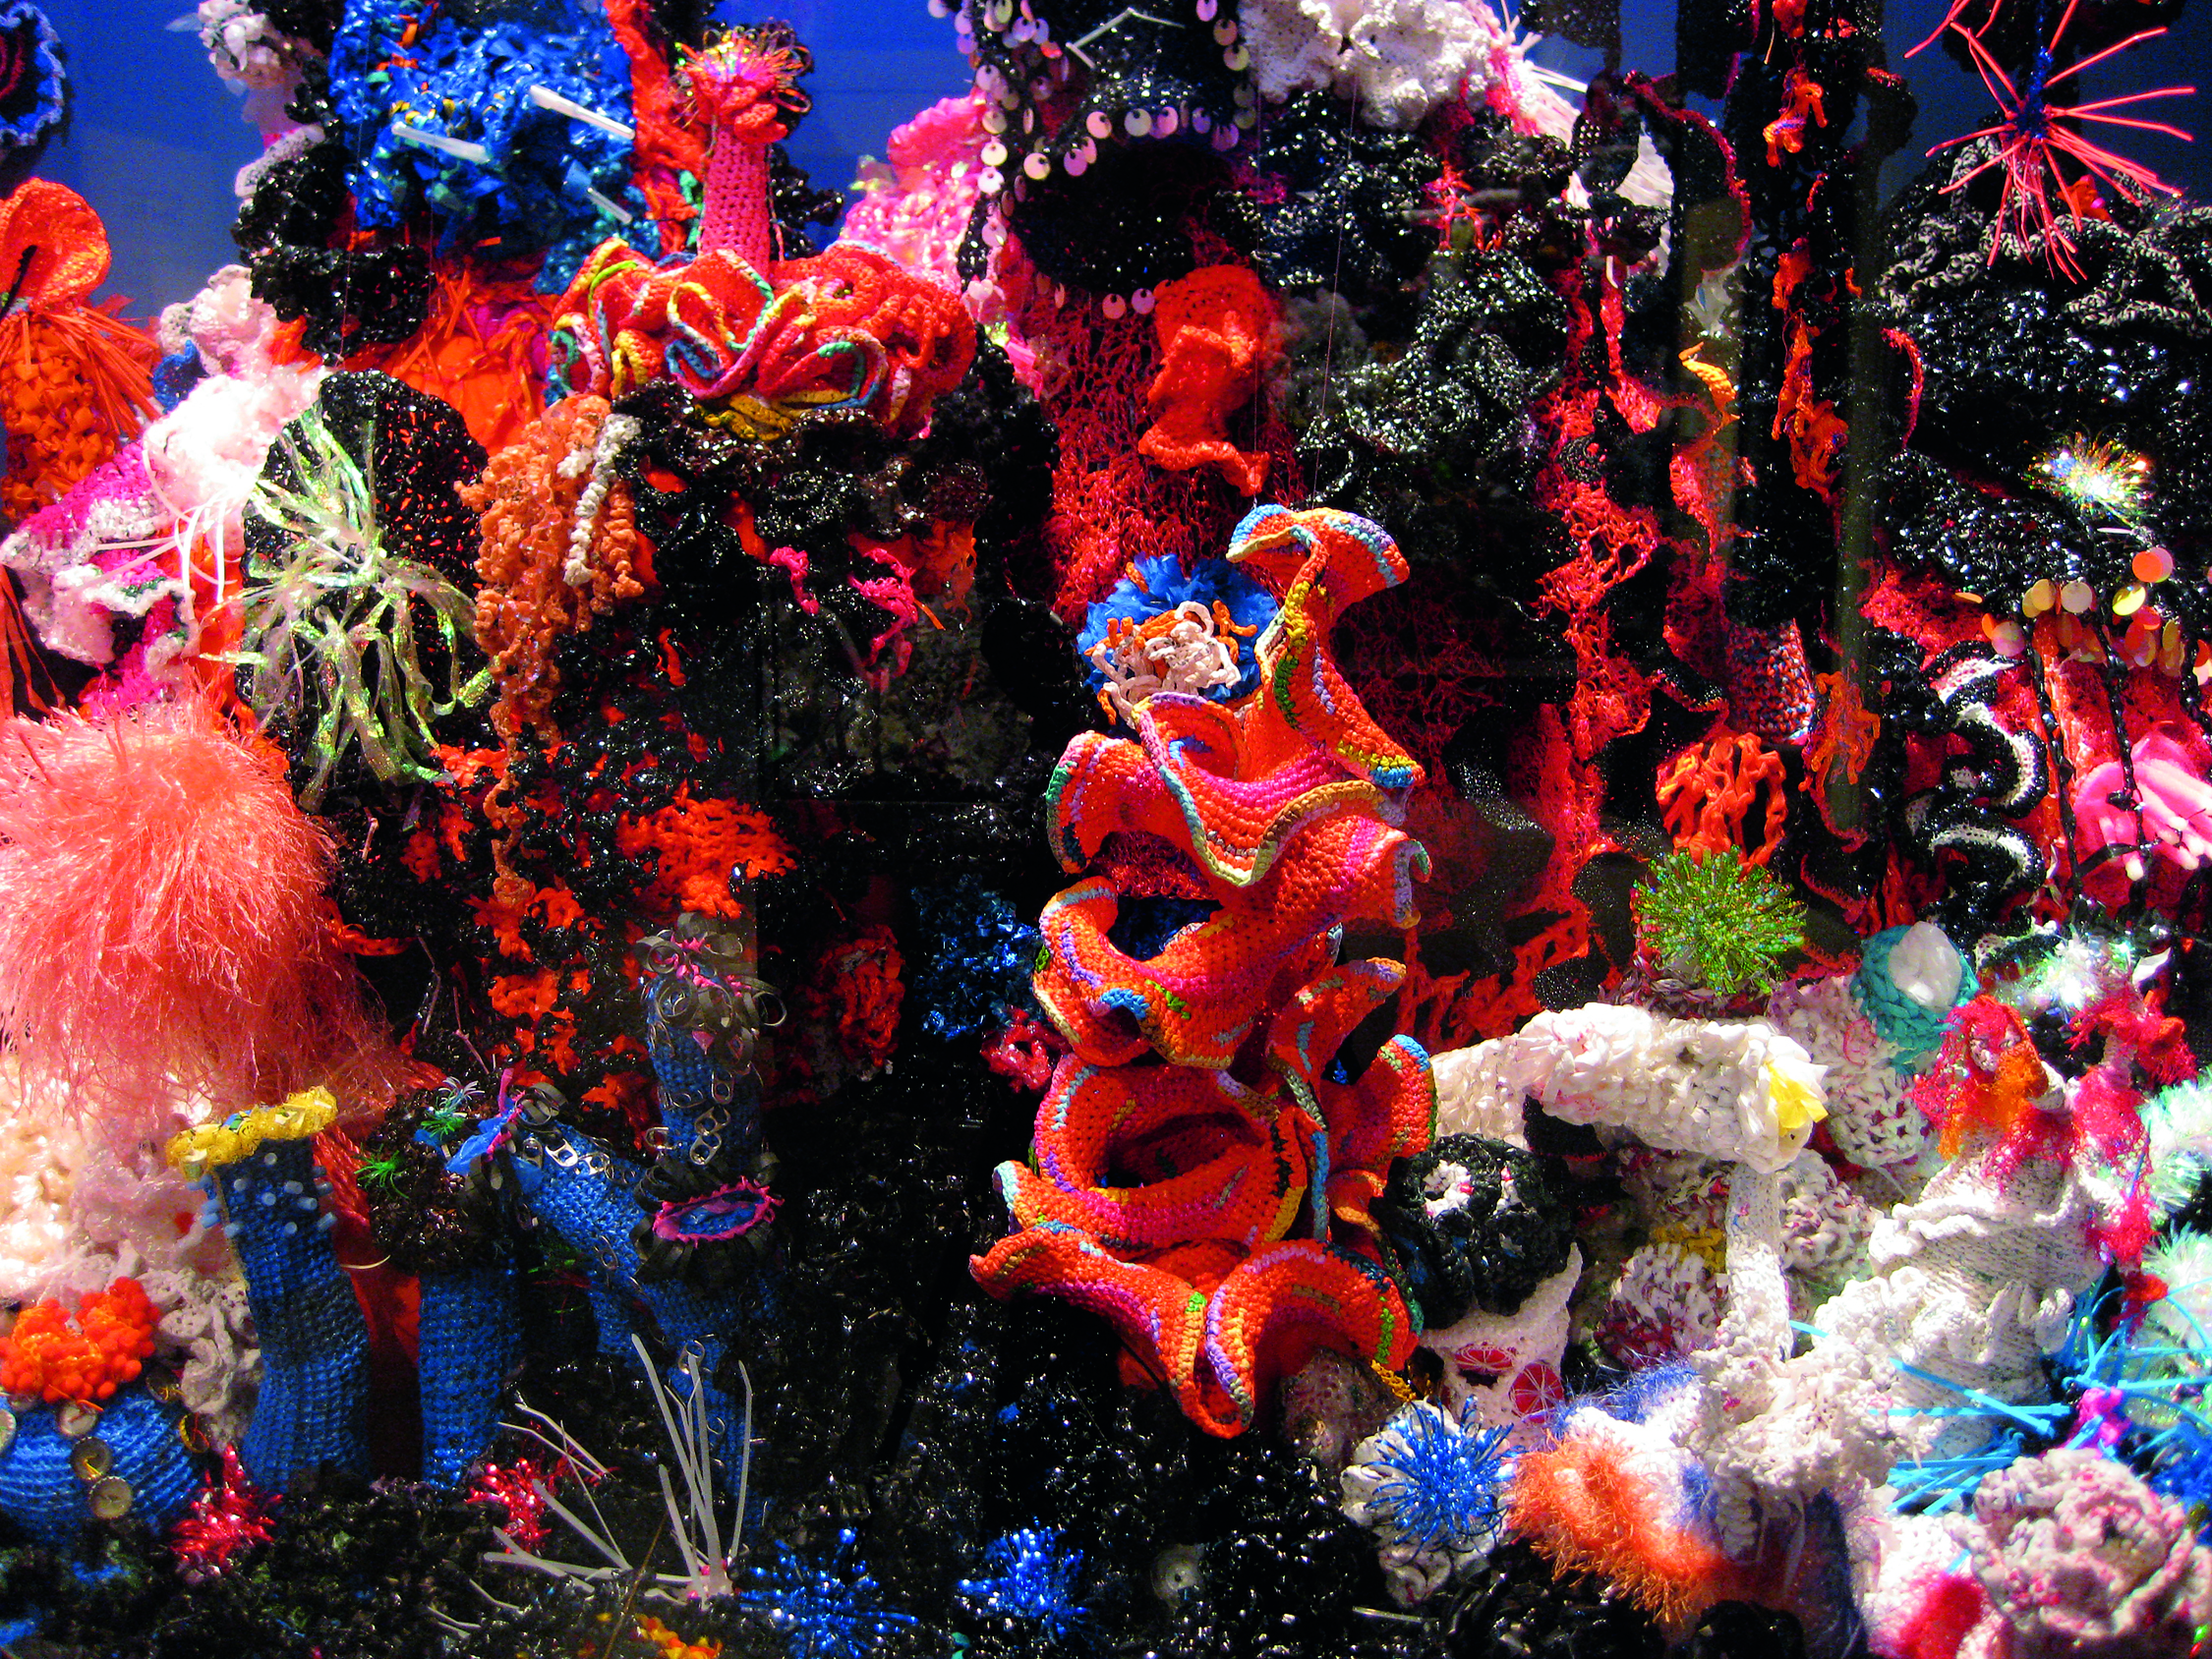 The Toxic Reef at the Smithsonian's National Museum of Natural History, Washington, D.C., 2011